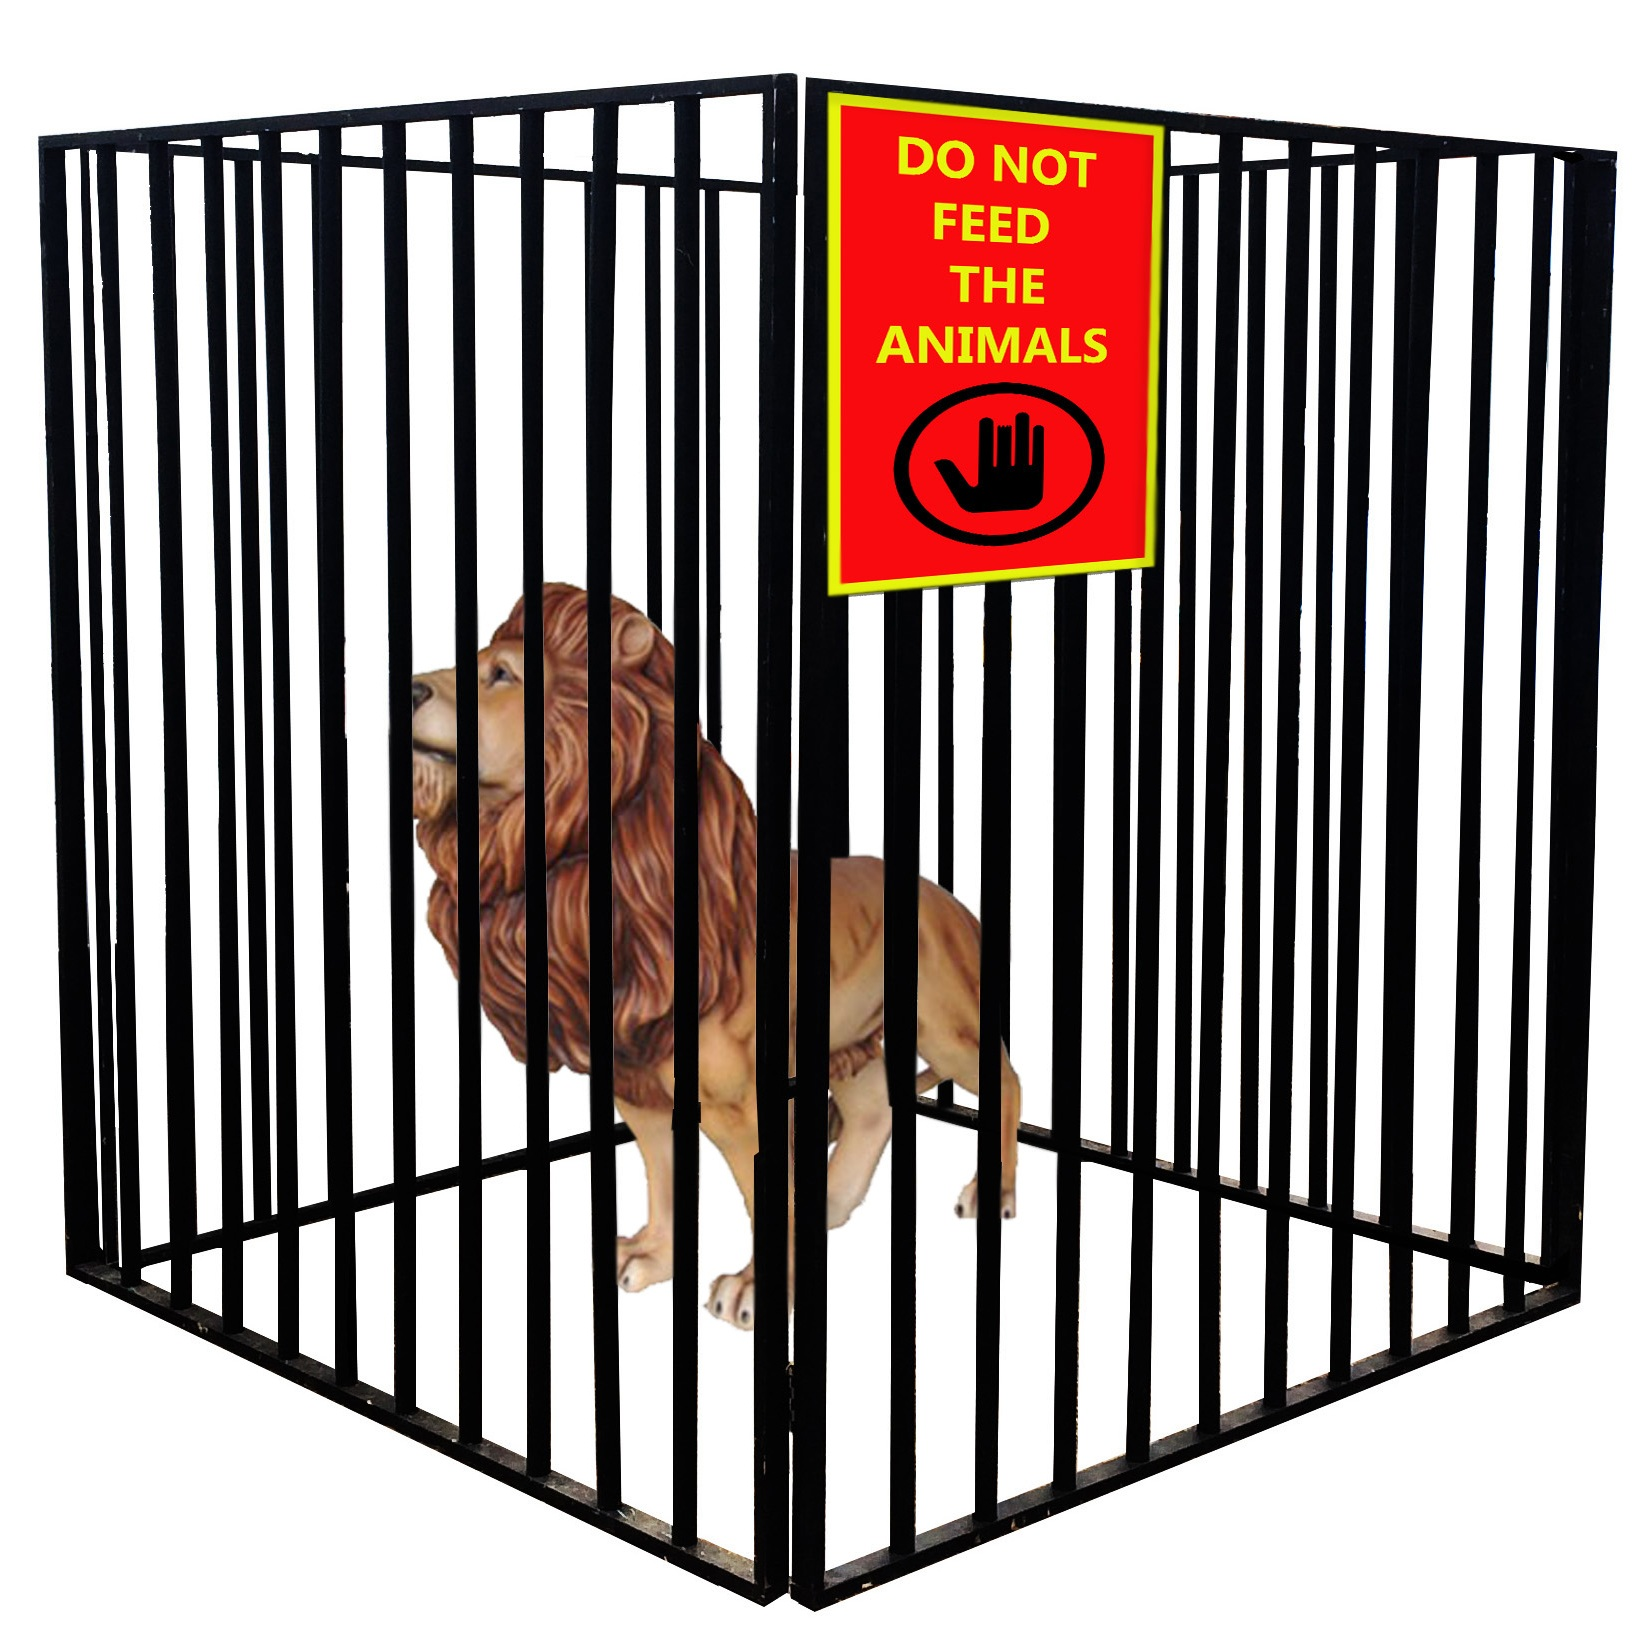 Lion+Animal+Jailhouse+Cage+WITH+SIGN+and+lion.jpg